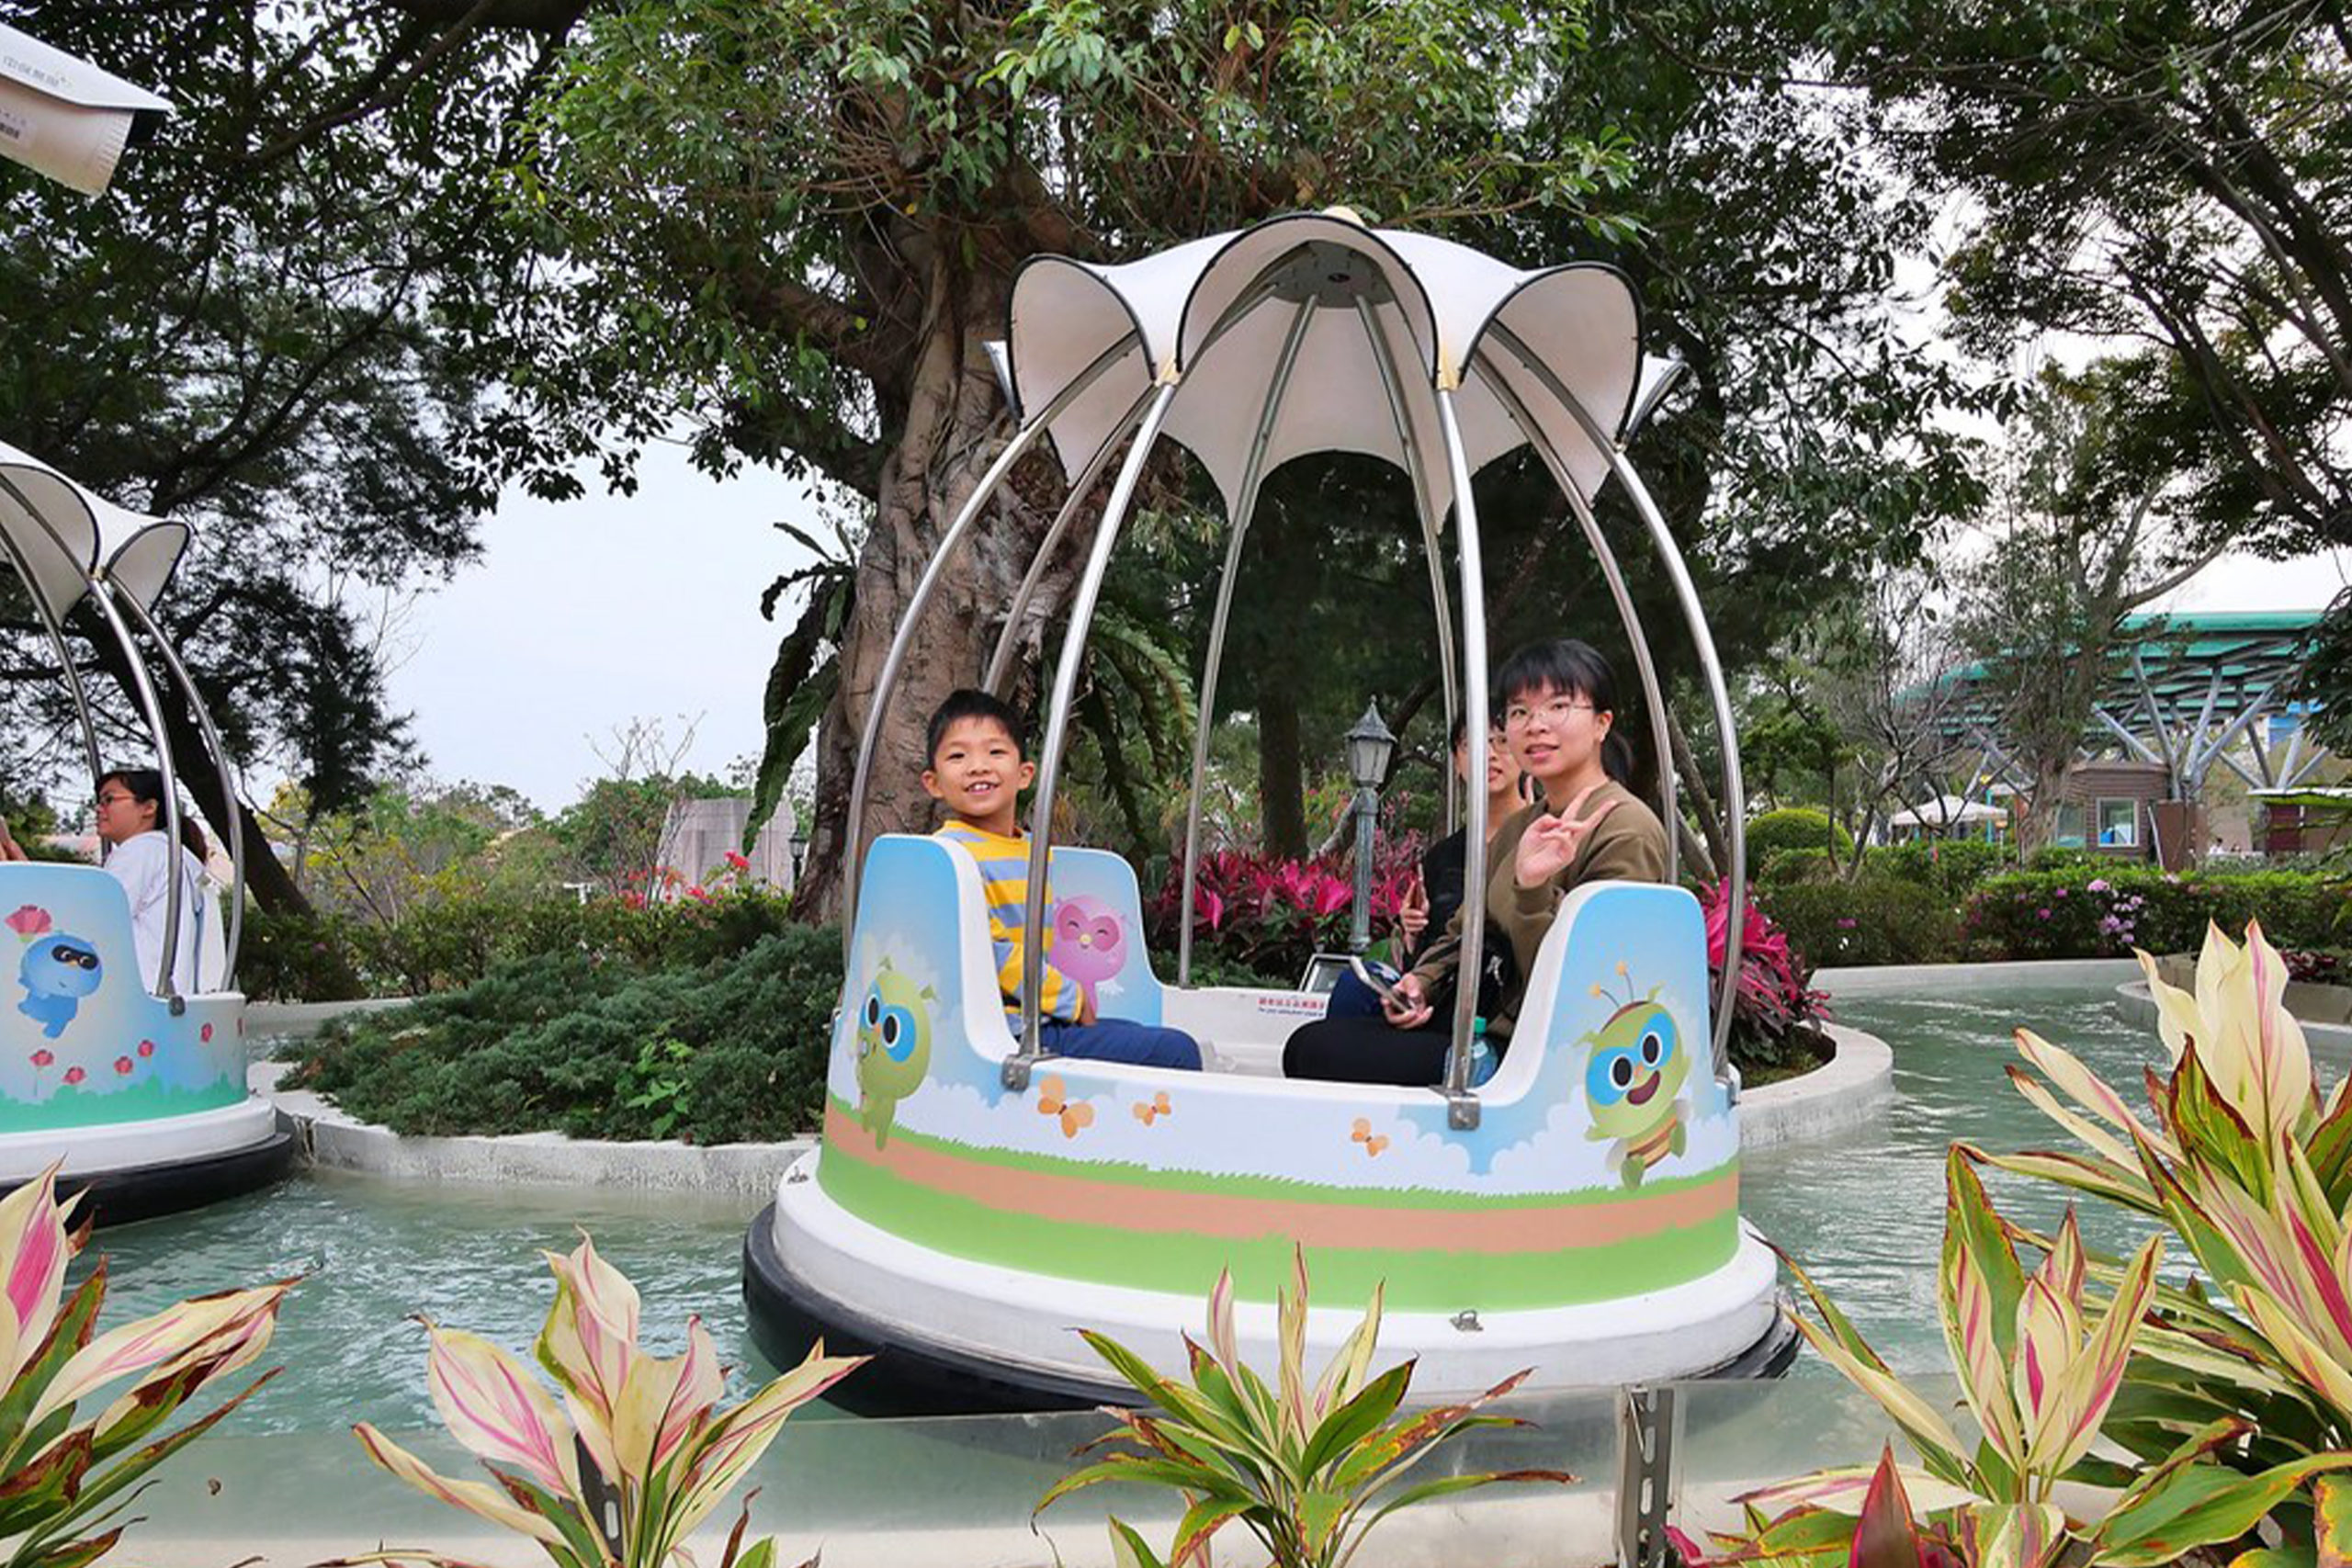 Interlink New Ride : Spin Boat Garden Boats at Lihpao Land 7